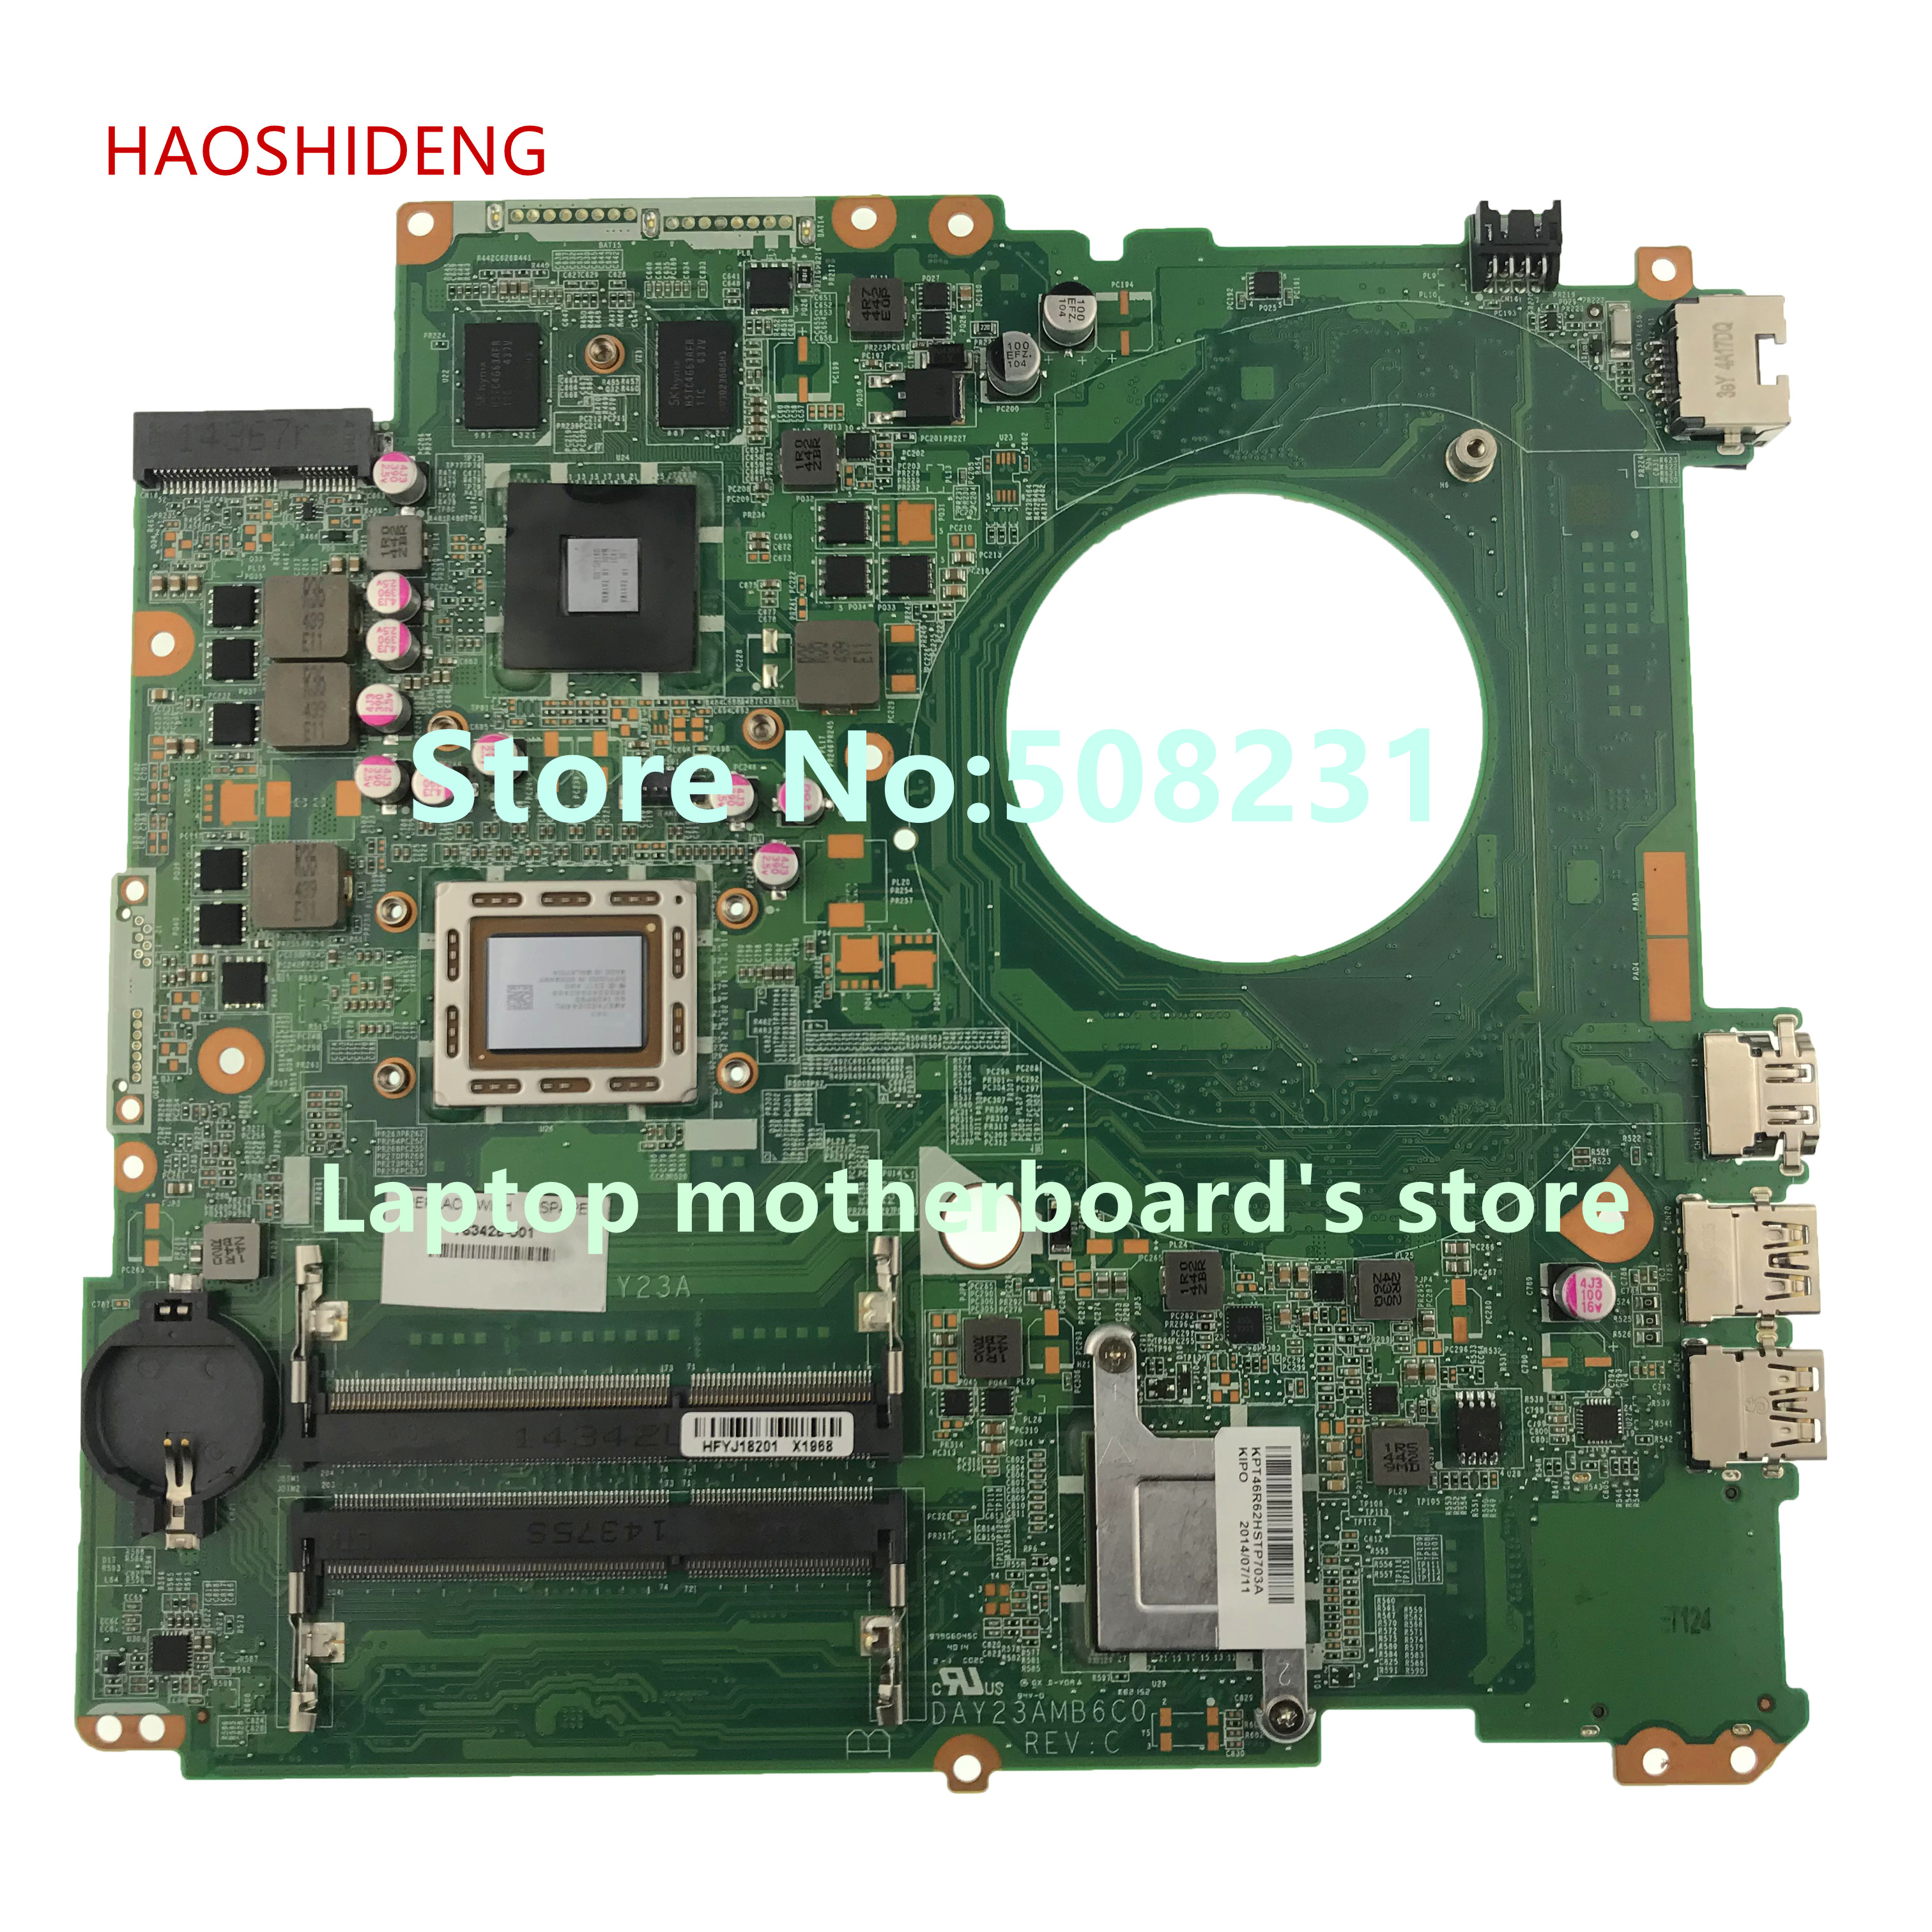 HAOSHIDENG 763428-501 763428-001 DAY23AMB6F0 for HP PAVILION 17 17-F 17Z-F laptop motherboard 260M/2GB A10-5745M fully Tested haoshideng 809985 601 809985 001 laptop motherboard for hp pavilion 17 p 17z p notebook day21amb6d0 a76m a10 7300 fully tested